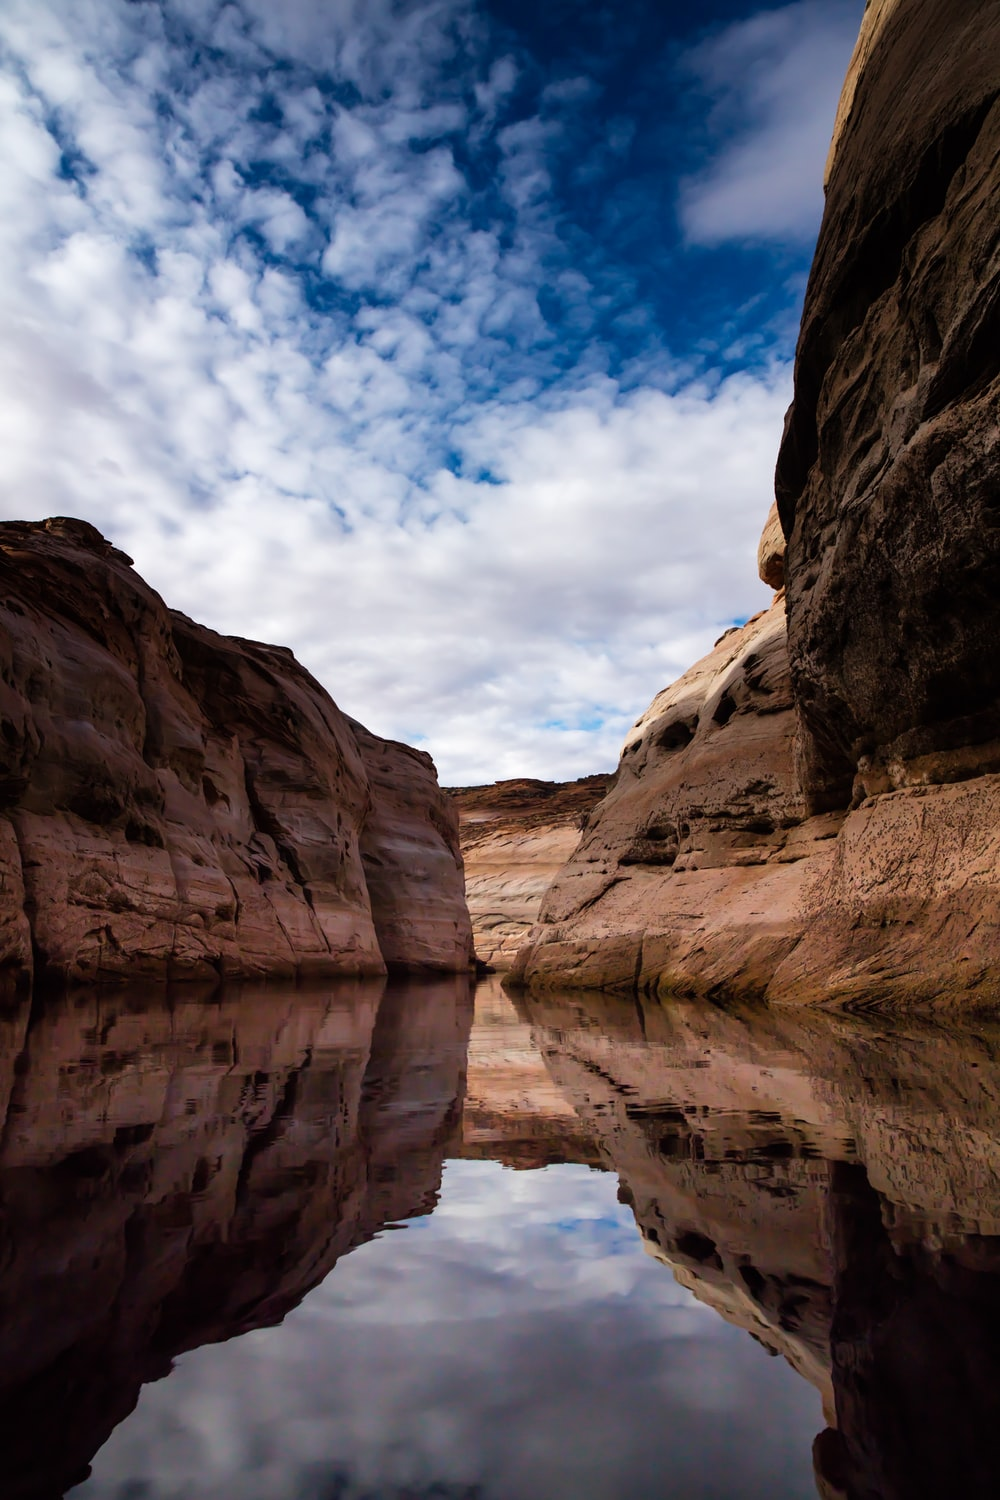 reflections of brown rocks on calm body of water